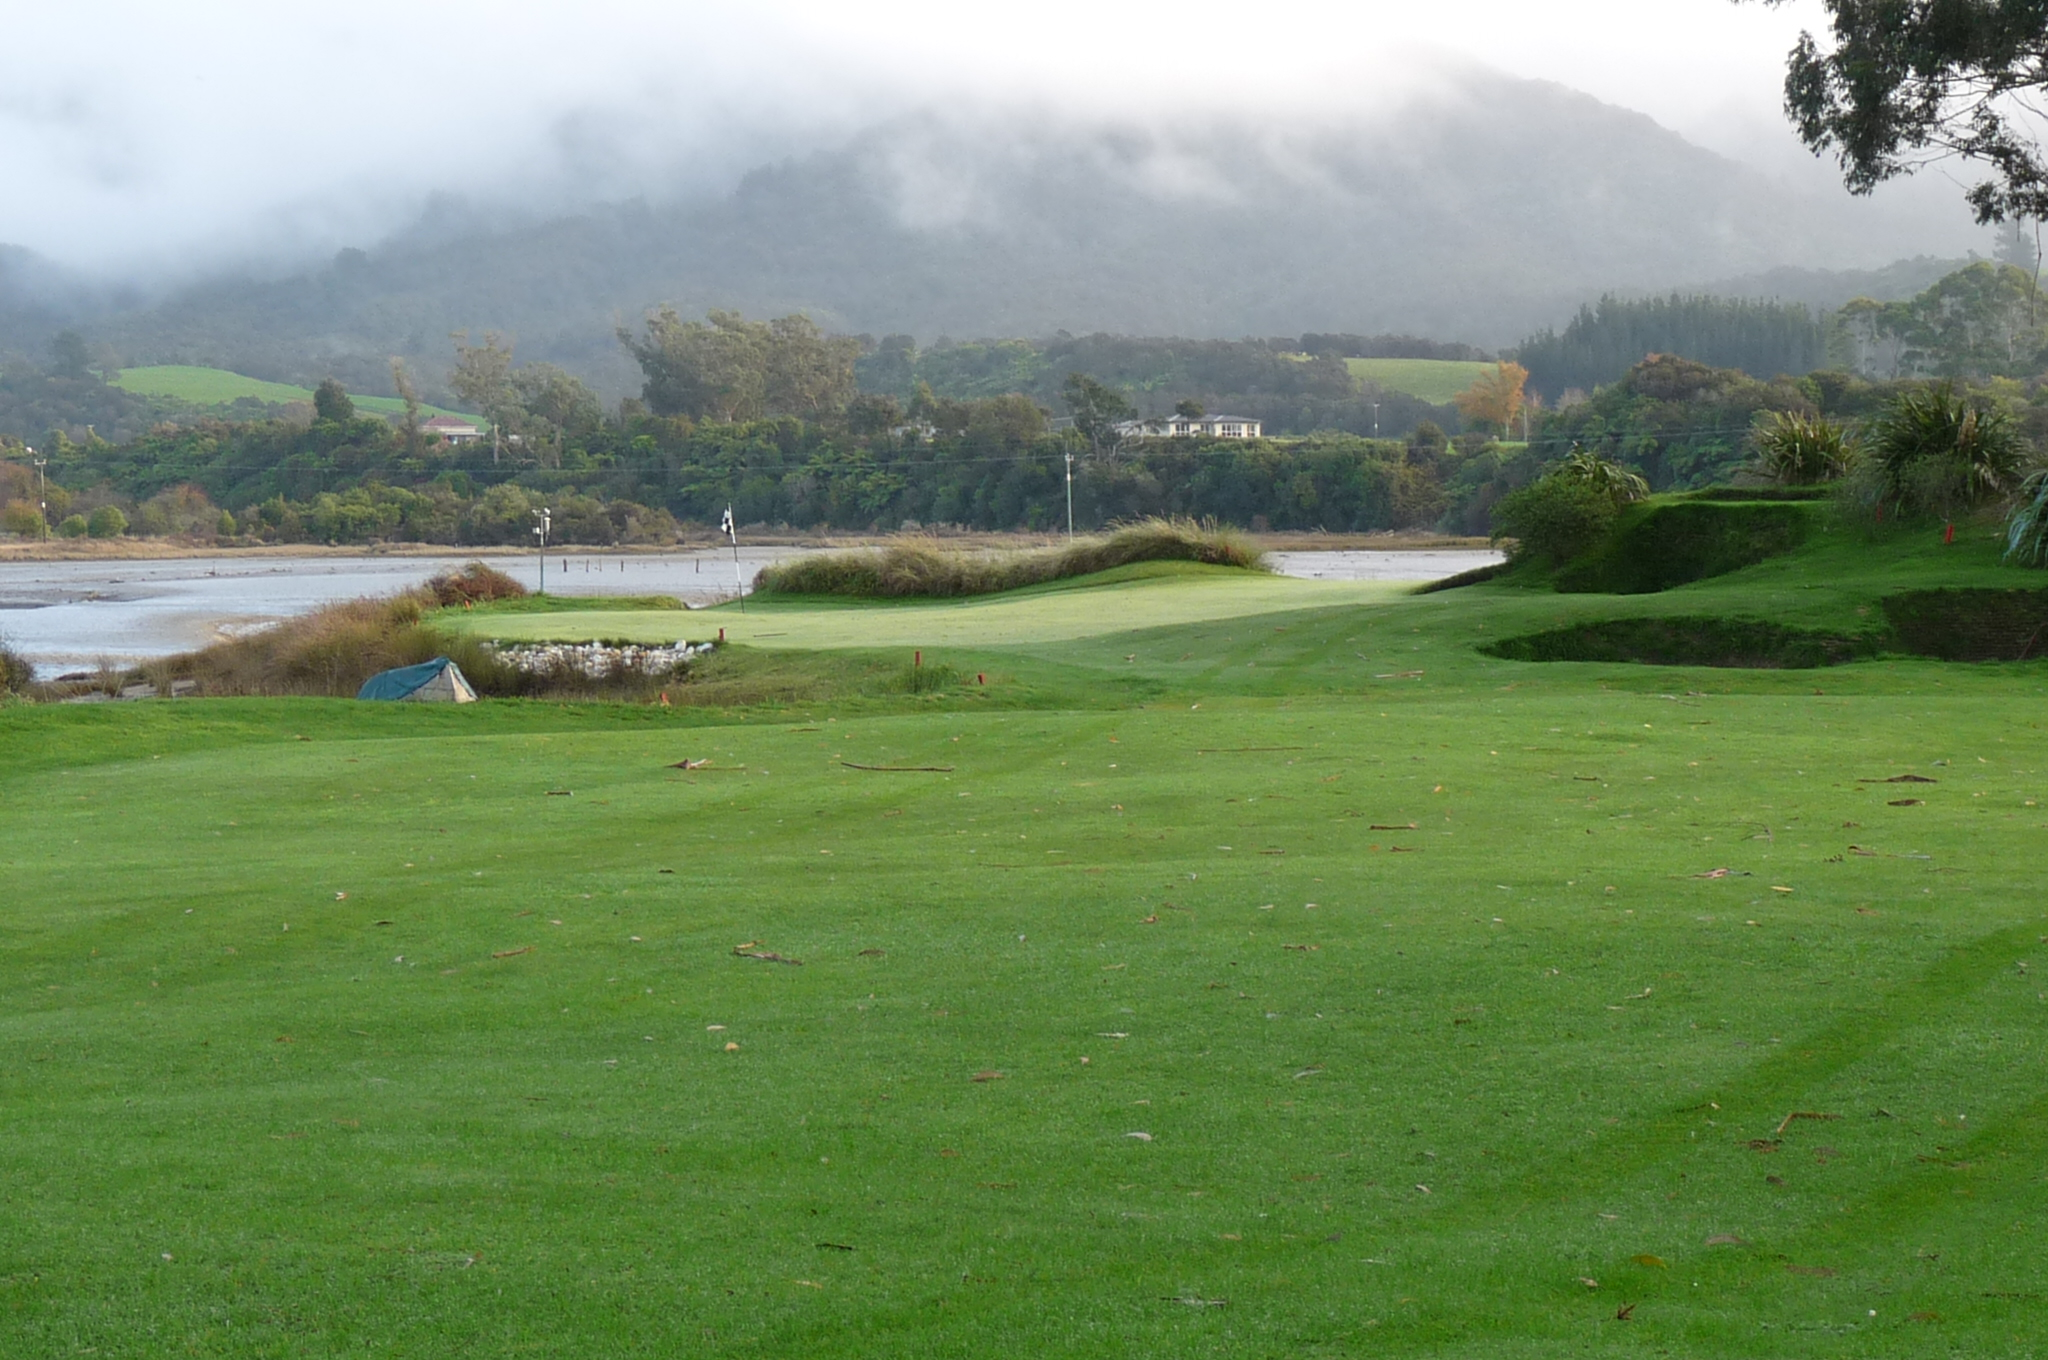 Green approach from 70 metres